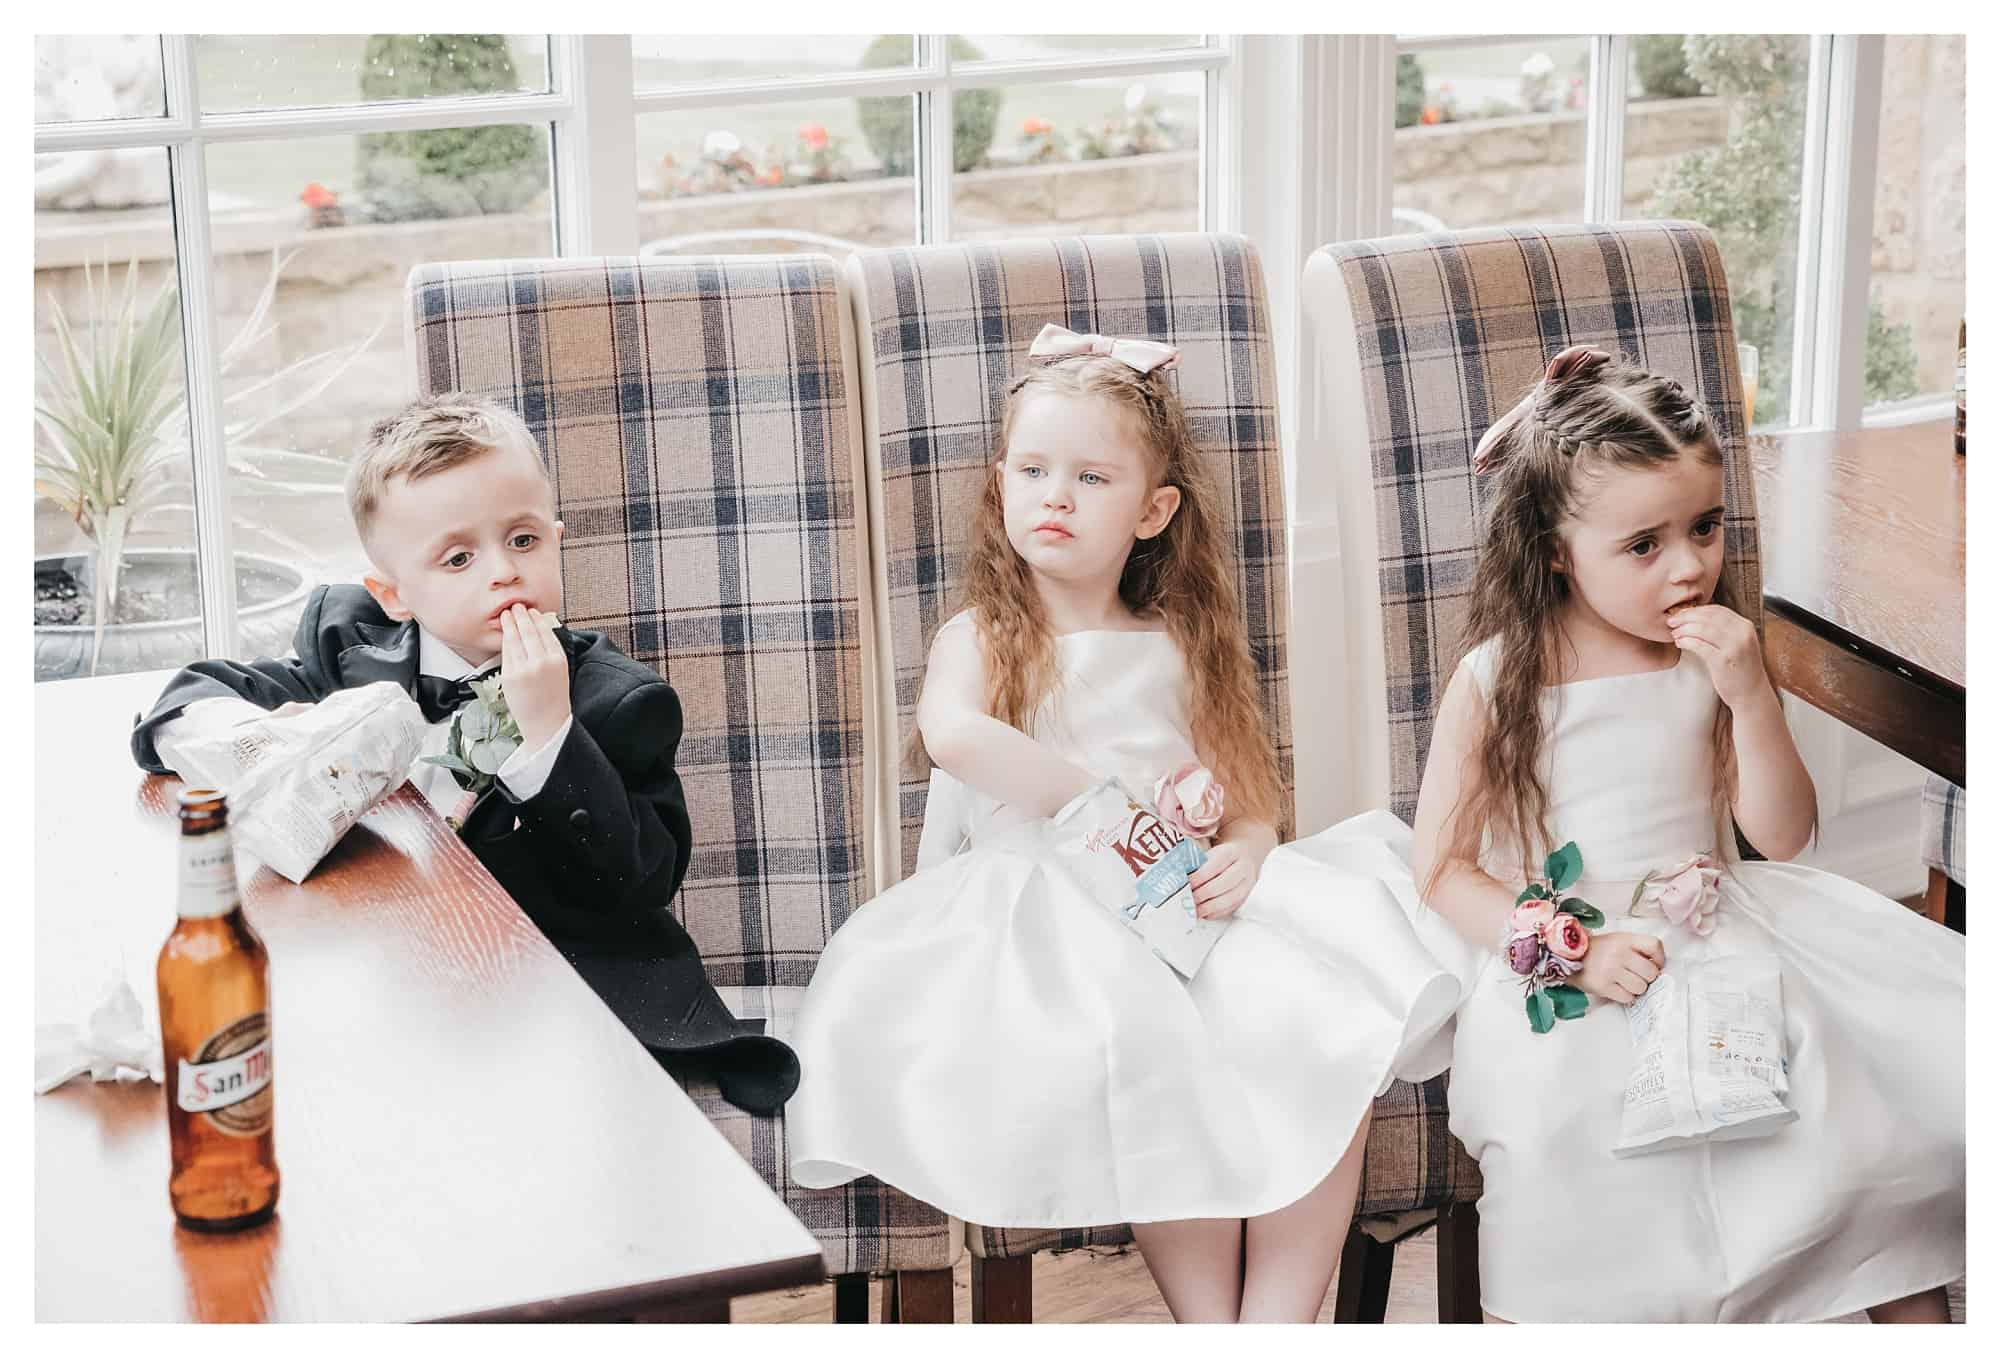 this image show 3 young children having a quick snack break eating crisp at a wedding